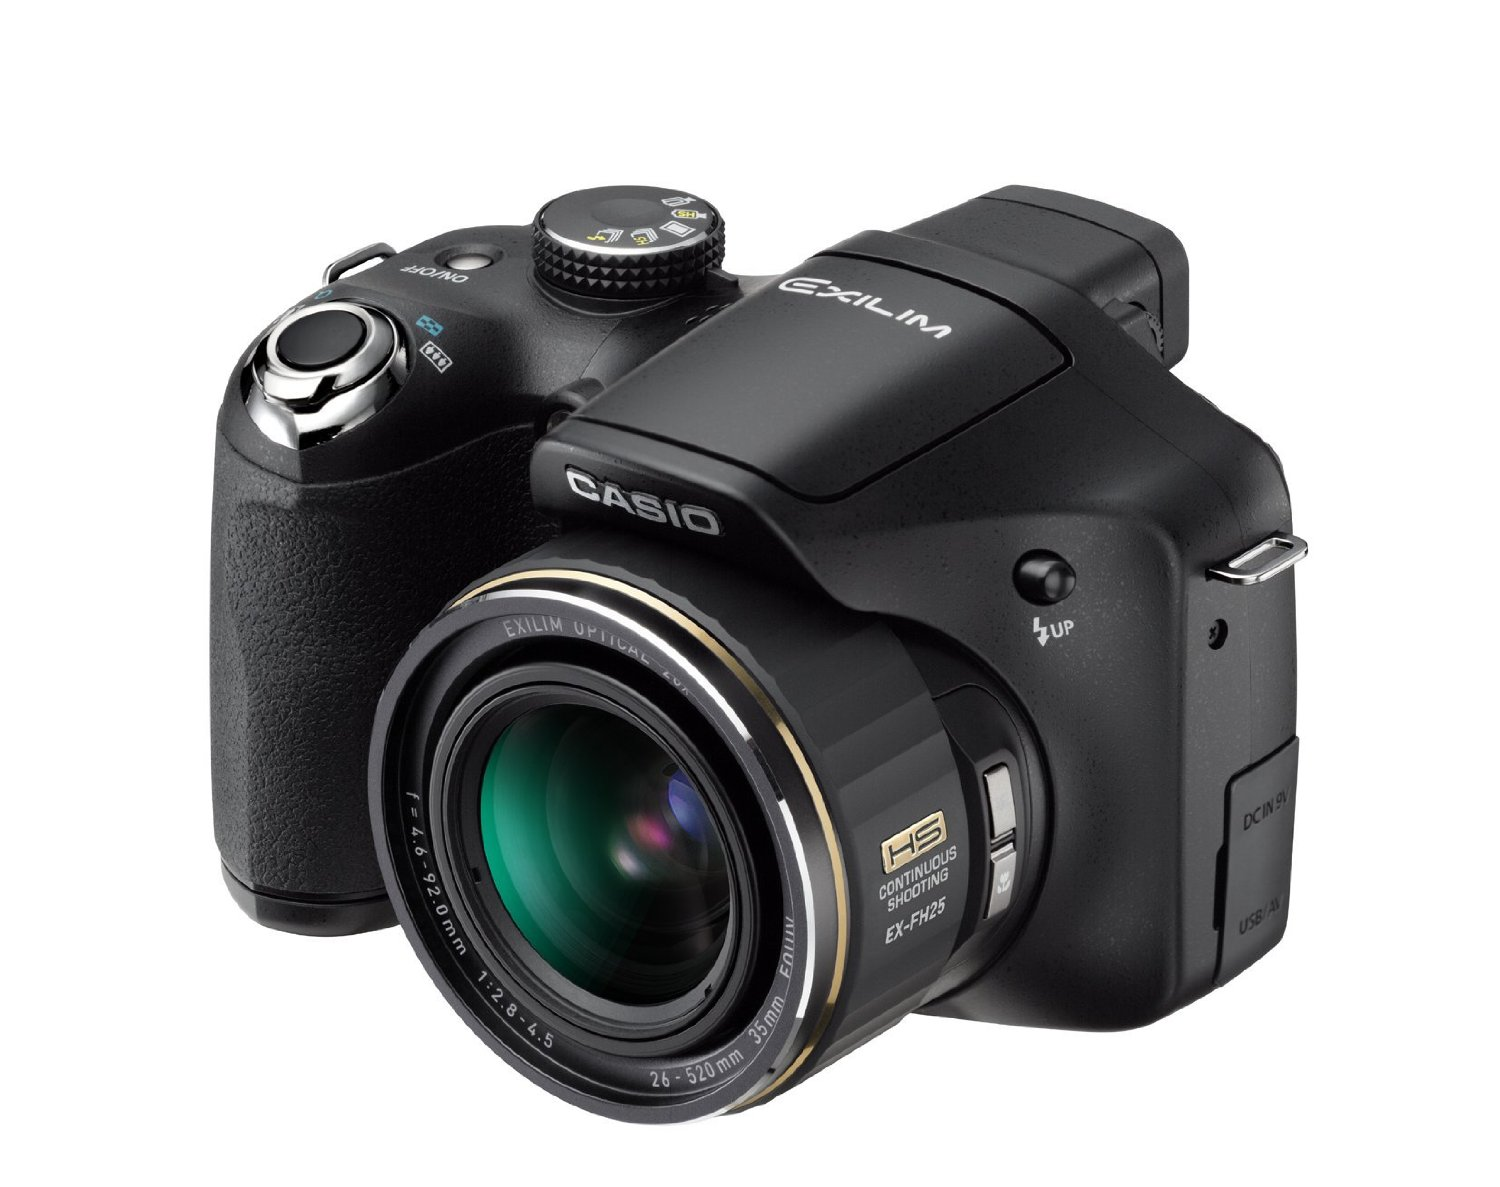 casio-ex-fh25-10-1mp-high-speed-digital-camera